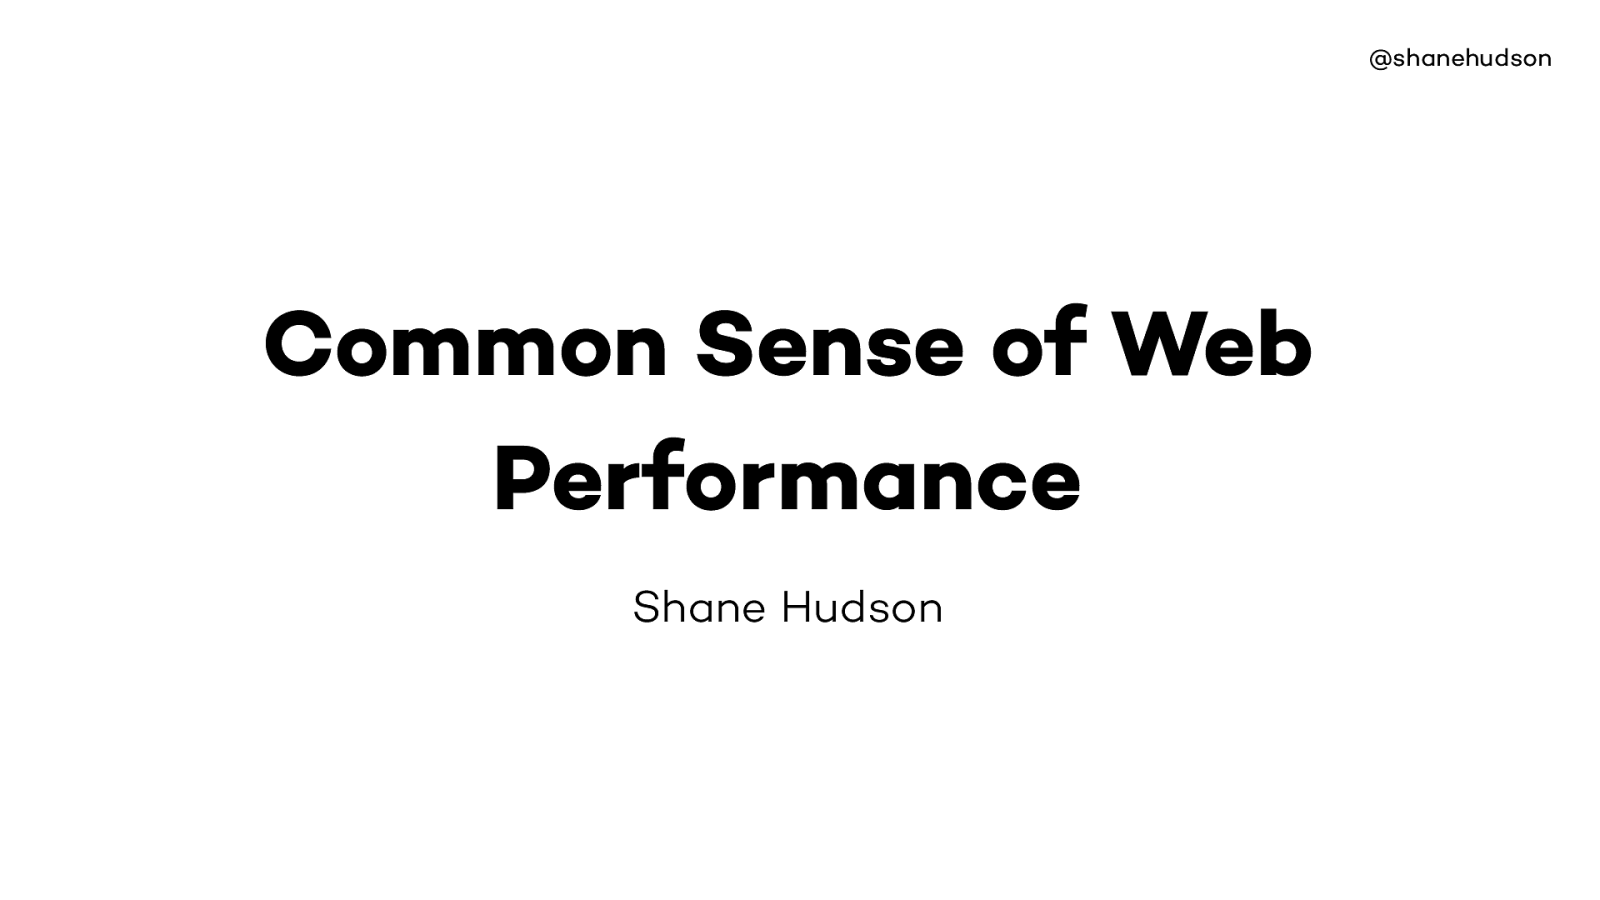 Common Sense of Web Performance